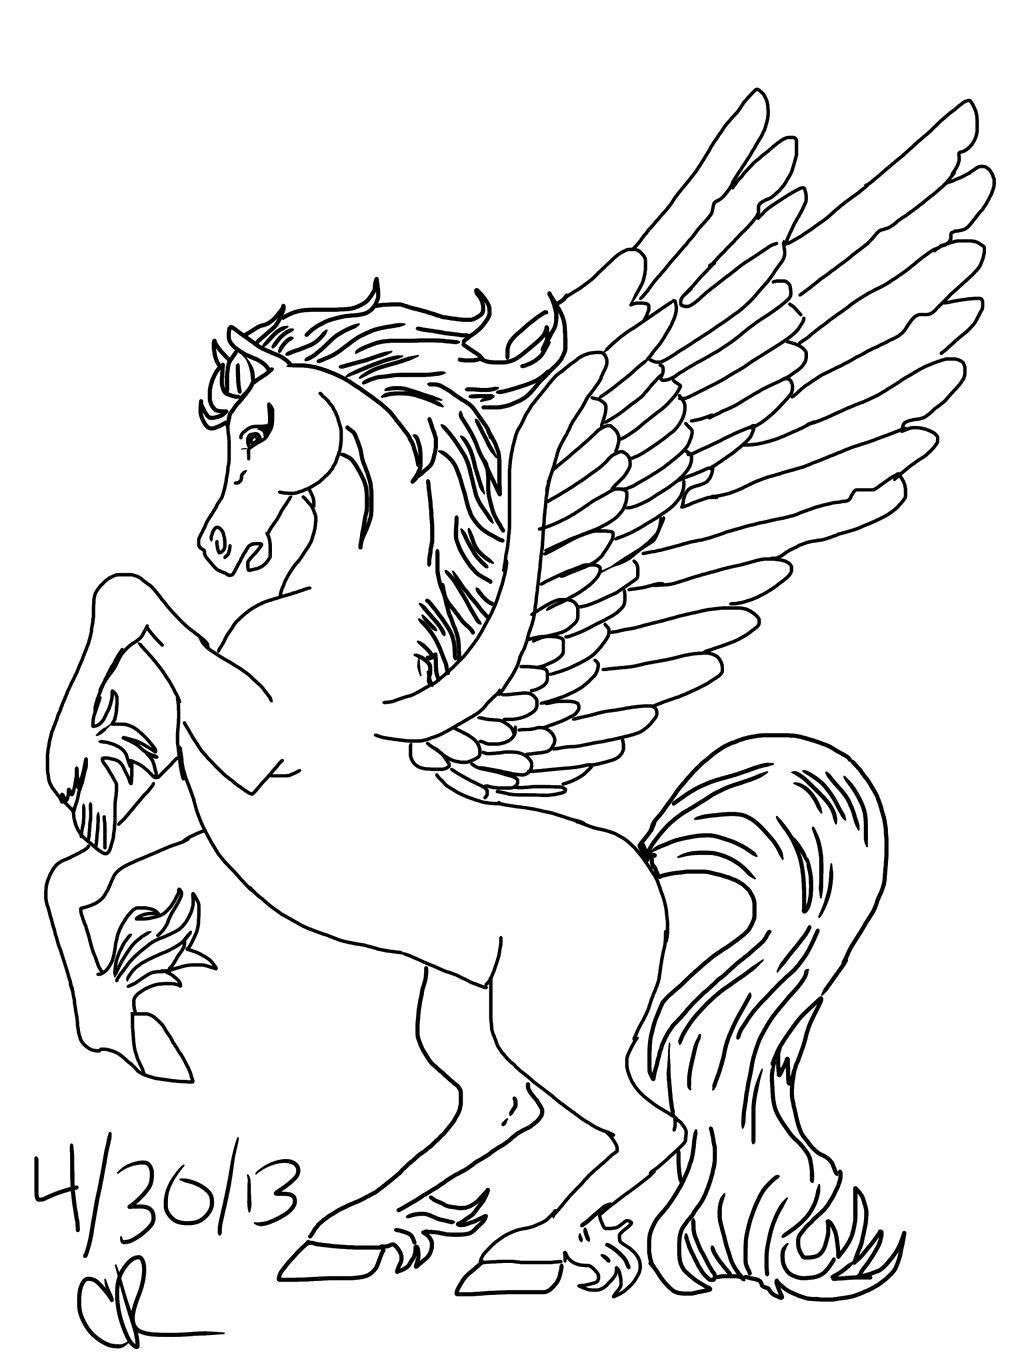 Unicorn With Wings Coloring Page Youngandtae Com Unicorn Coloring Pages Horse Coloring Pages Coloring Pages